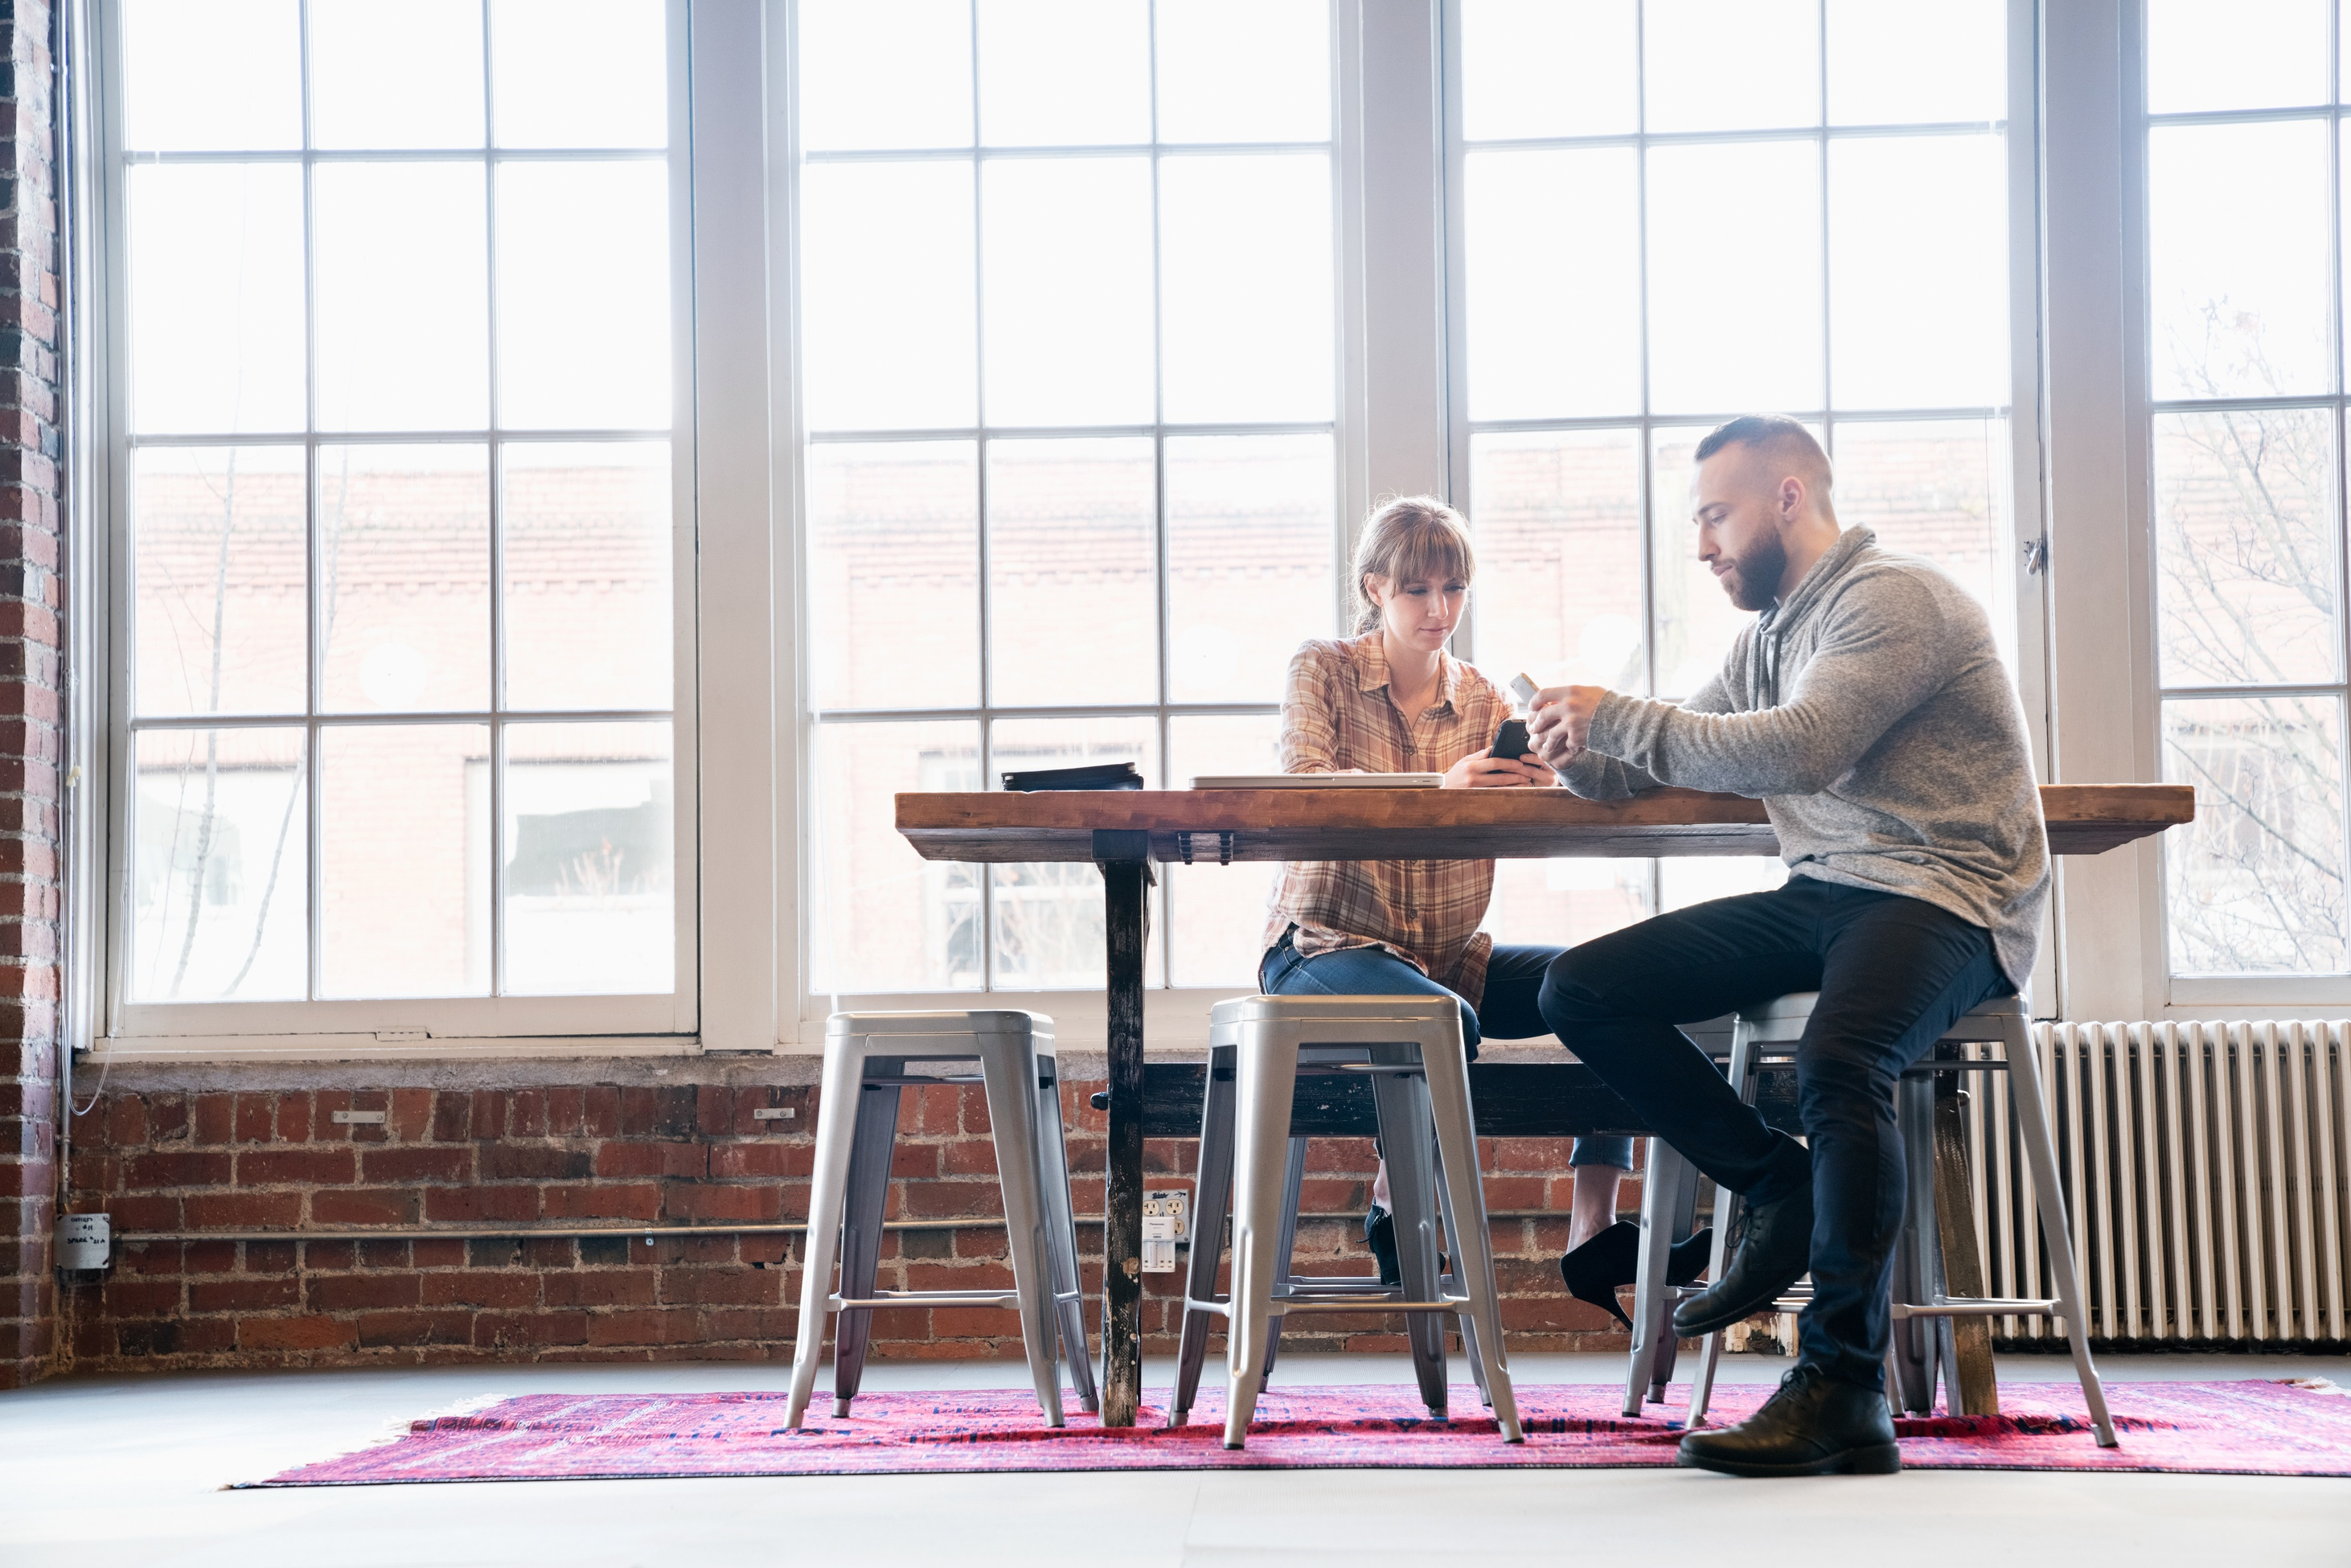 Introduction to the White-Collar Gig Economy